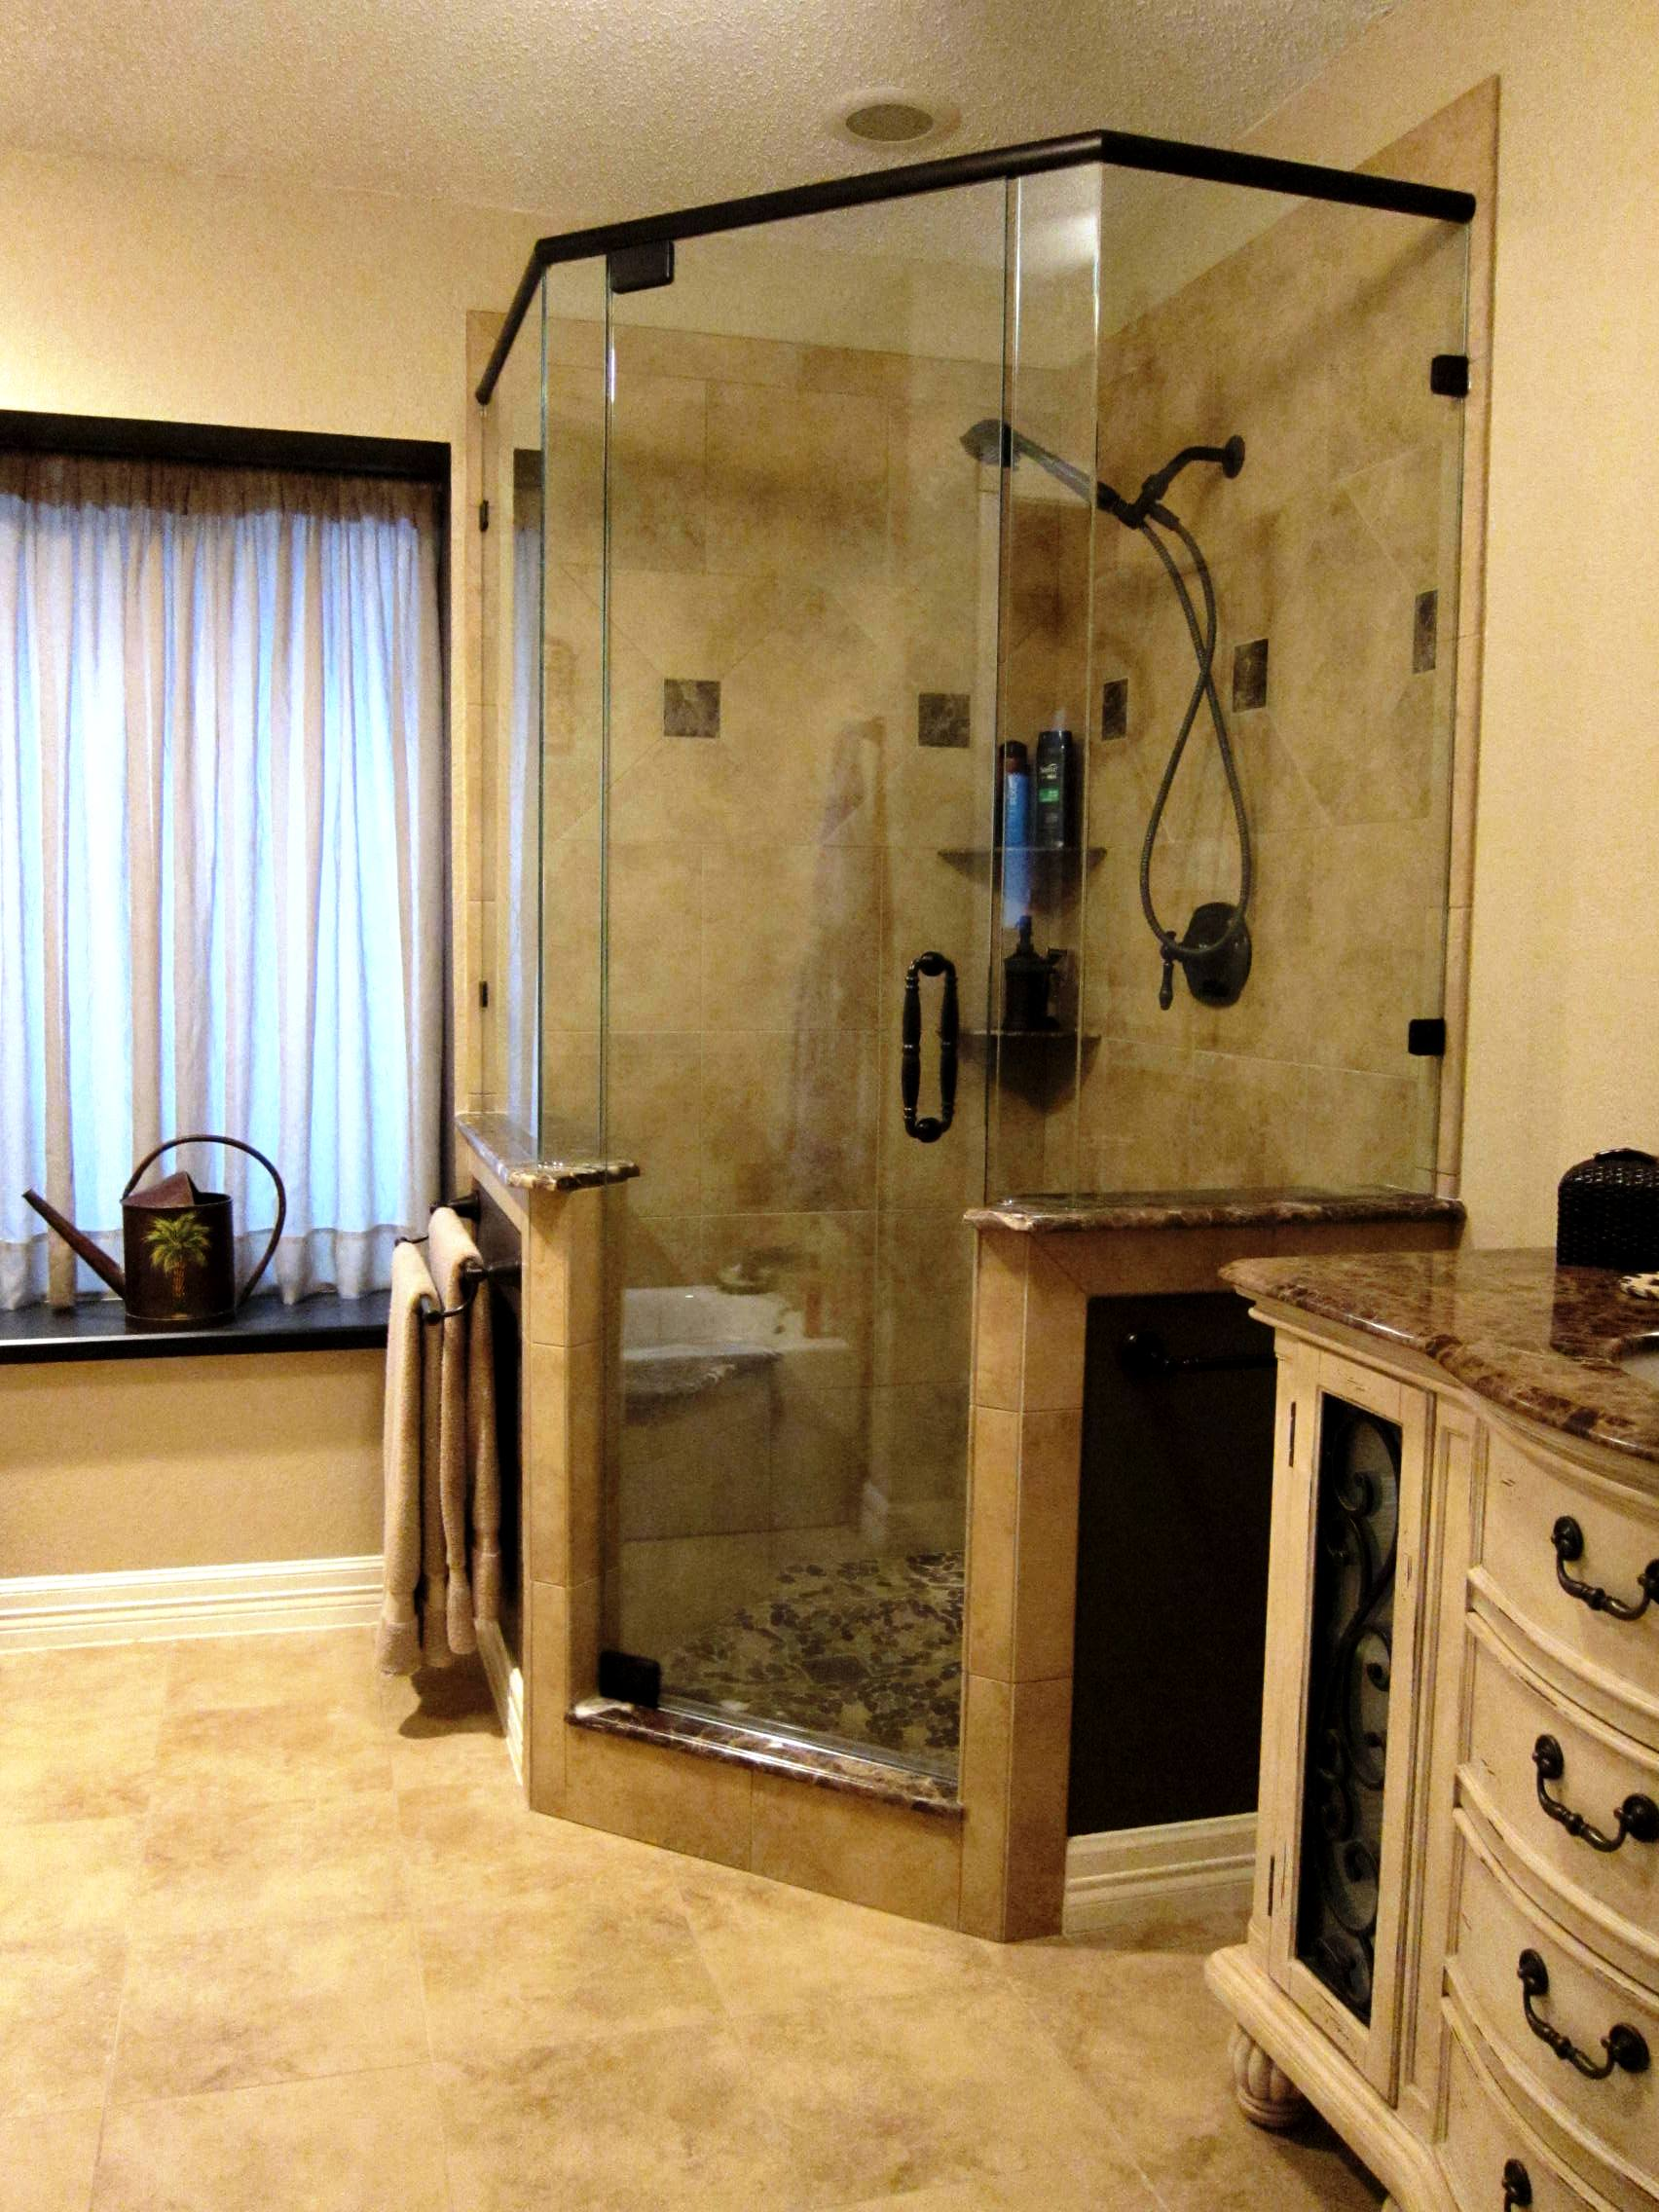 Typical bathroom remodel cost in texas by the floor barn Remodeling bathrooms cost